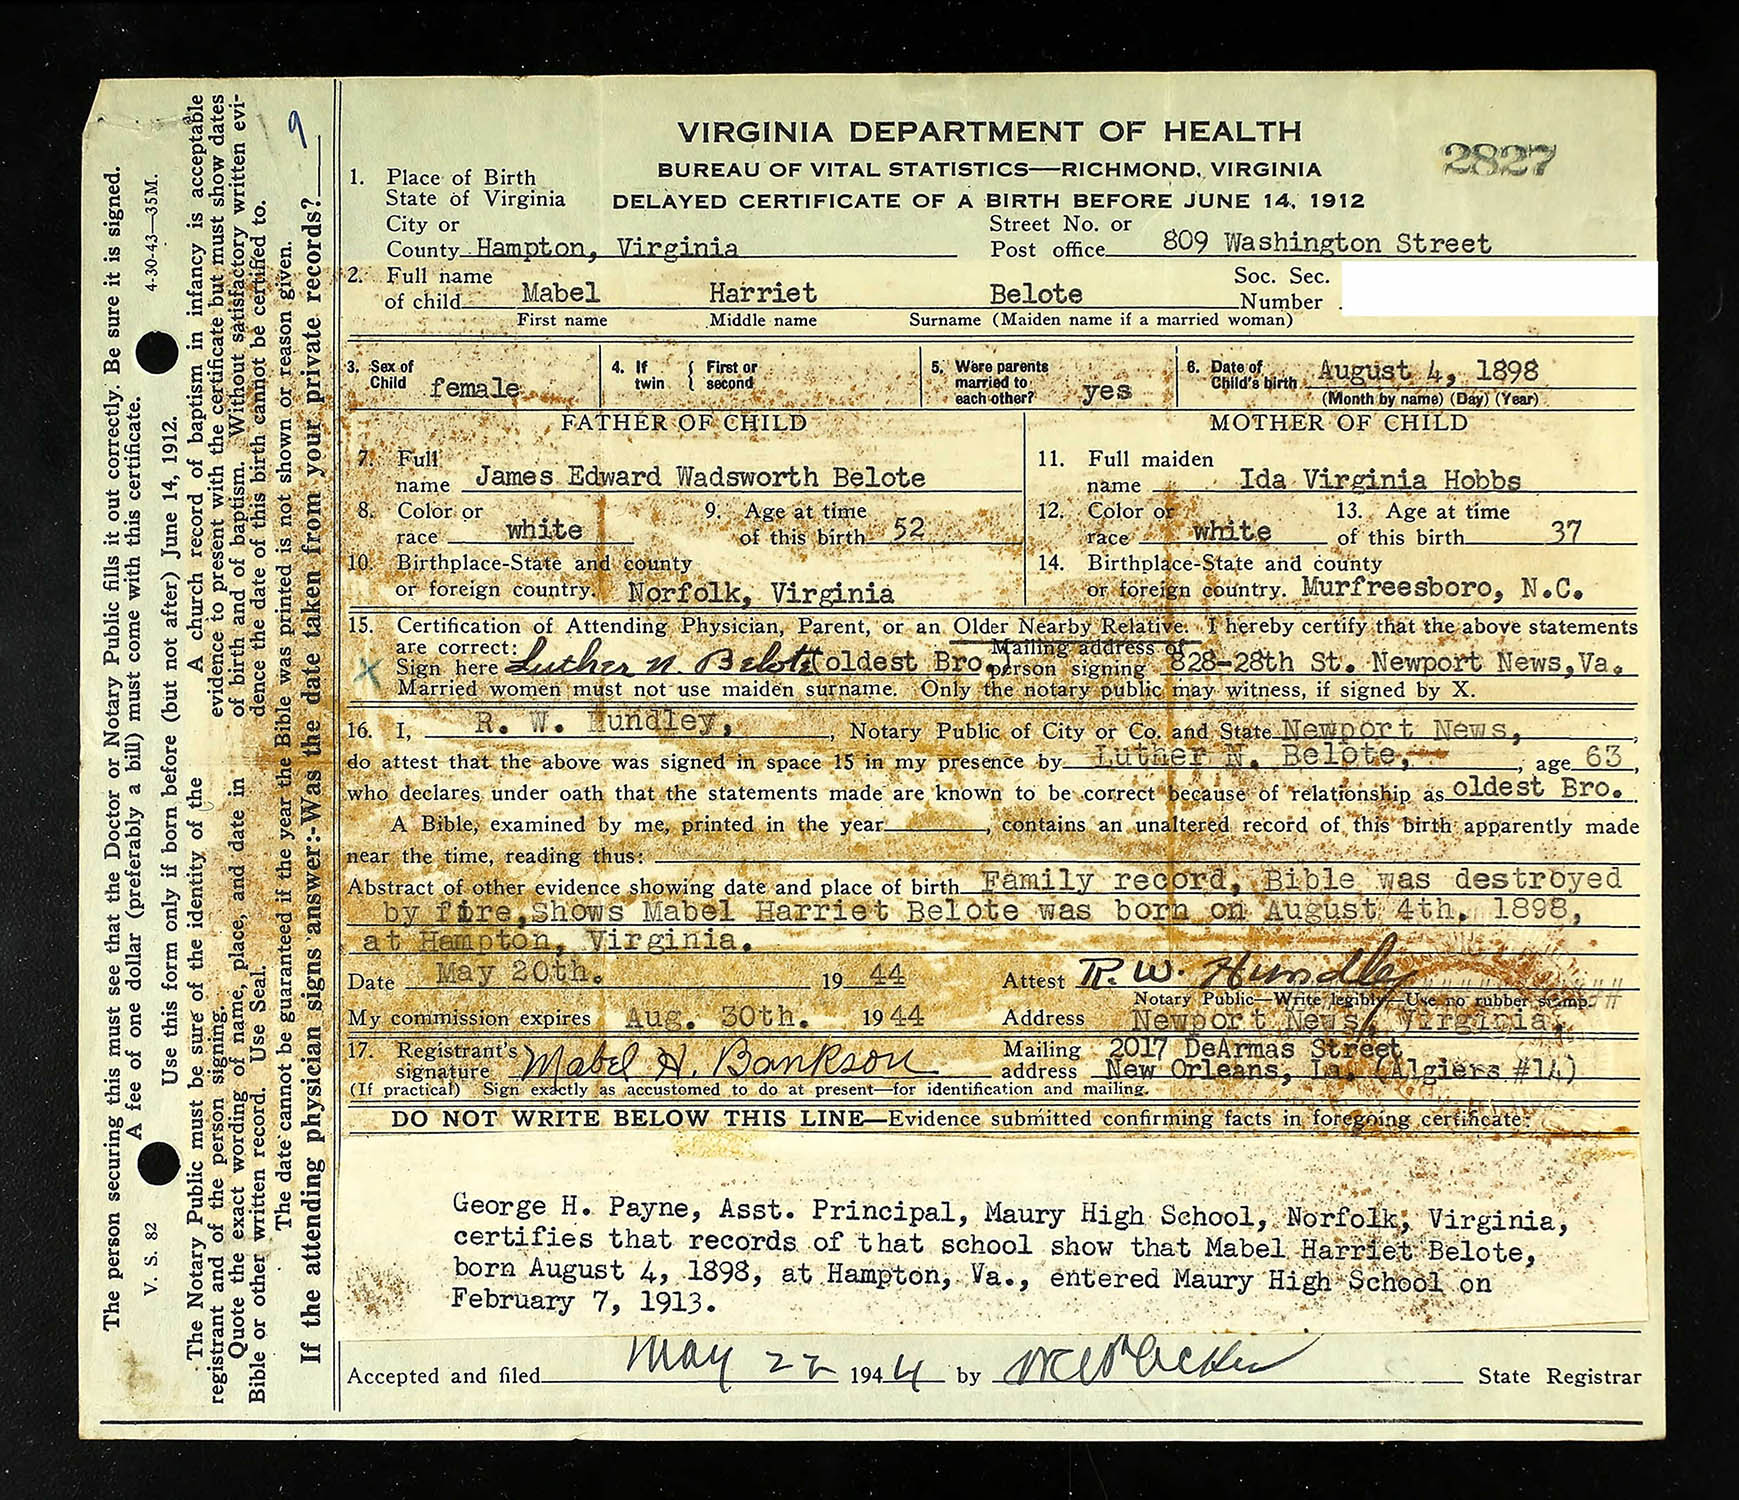 Delayed Birth Certificate For Mabel Harriet Belote Born August 4